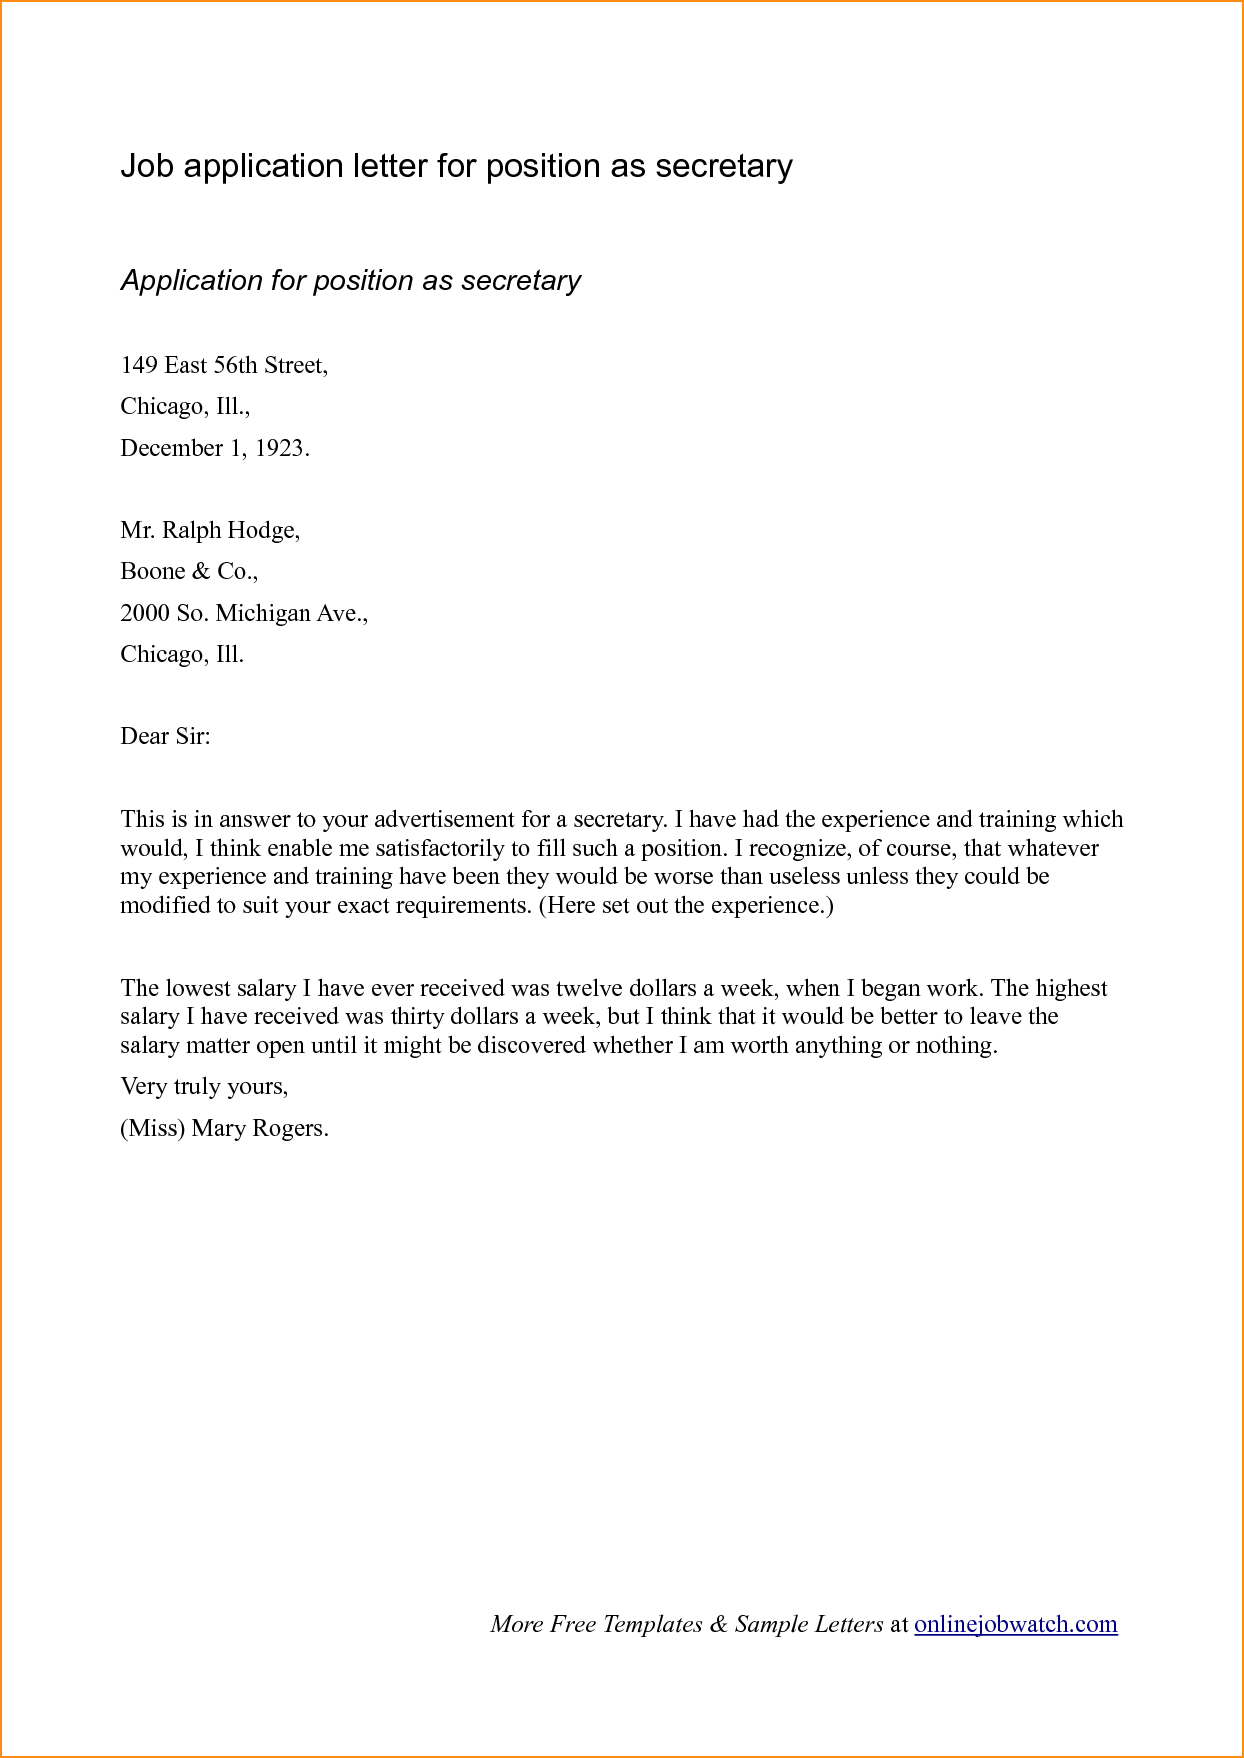 Letter Sample Eastern Illinois University Cover Example Job Application  Letters Templates  Cover Resume Letter Examples